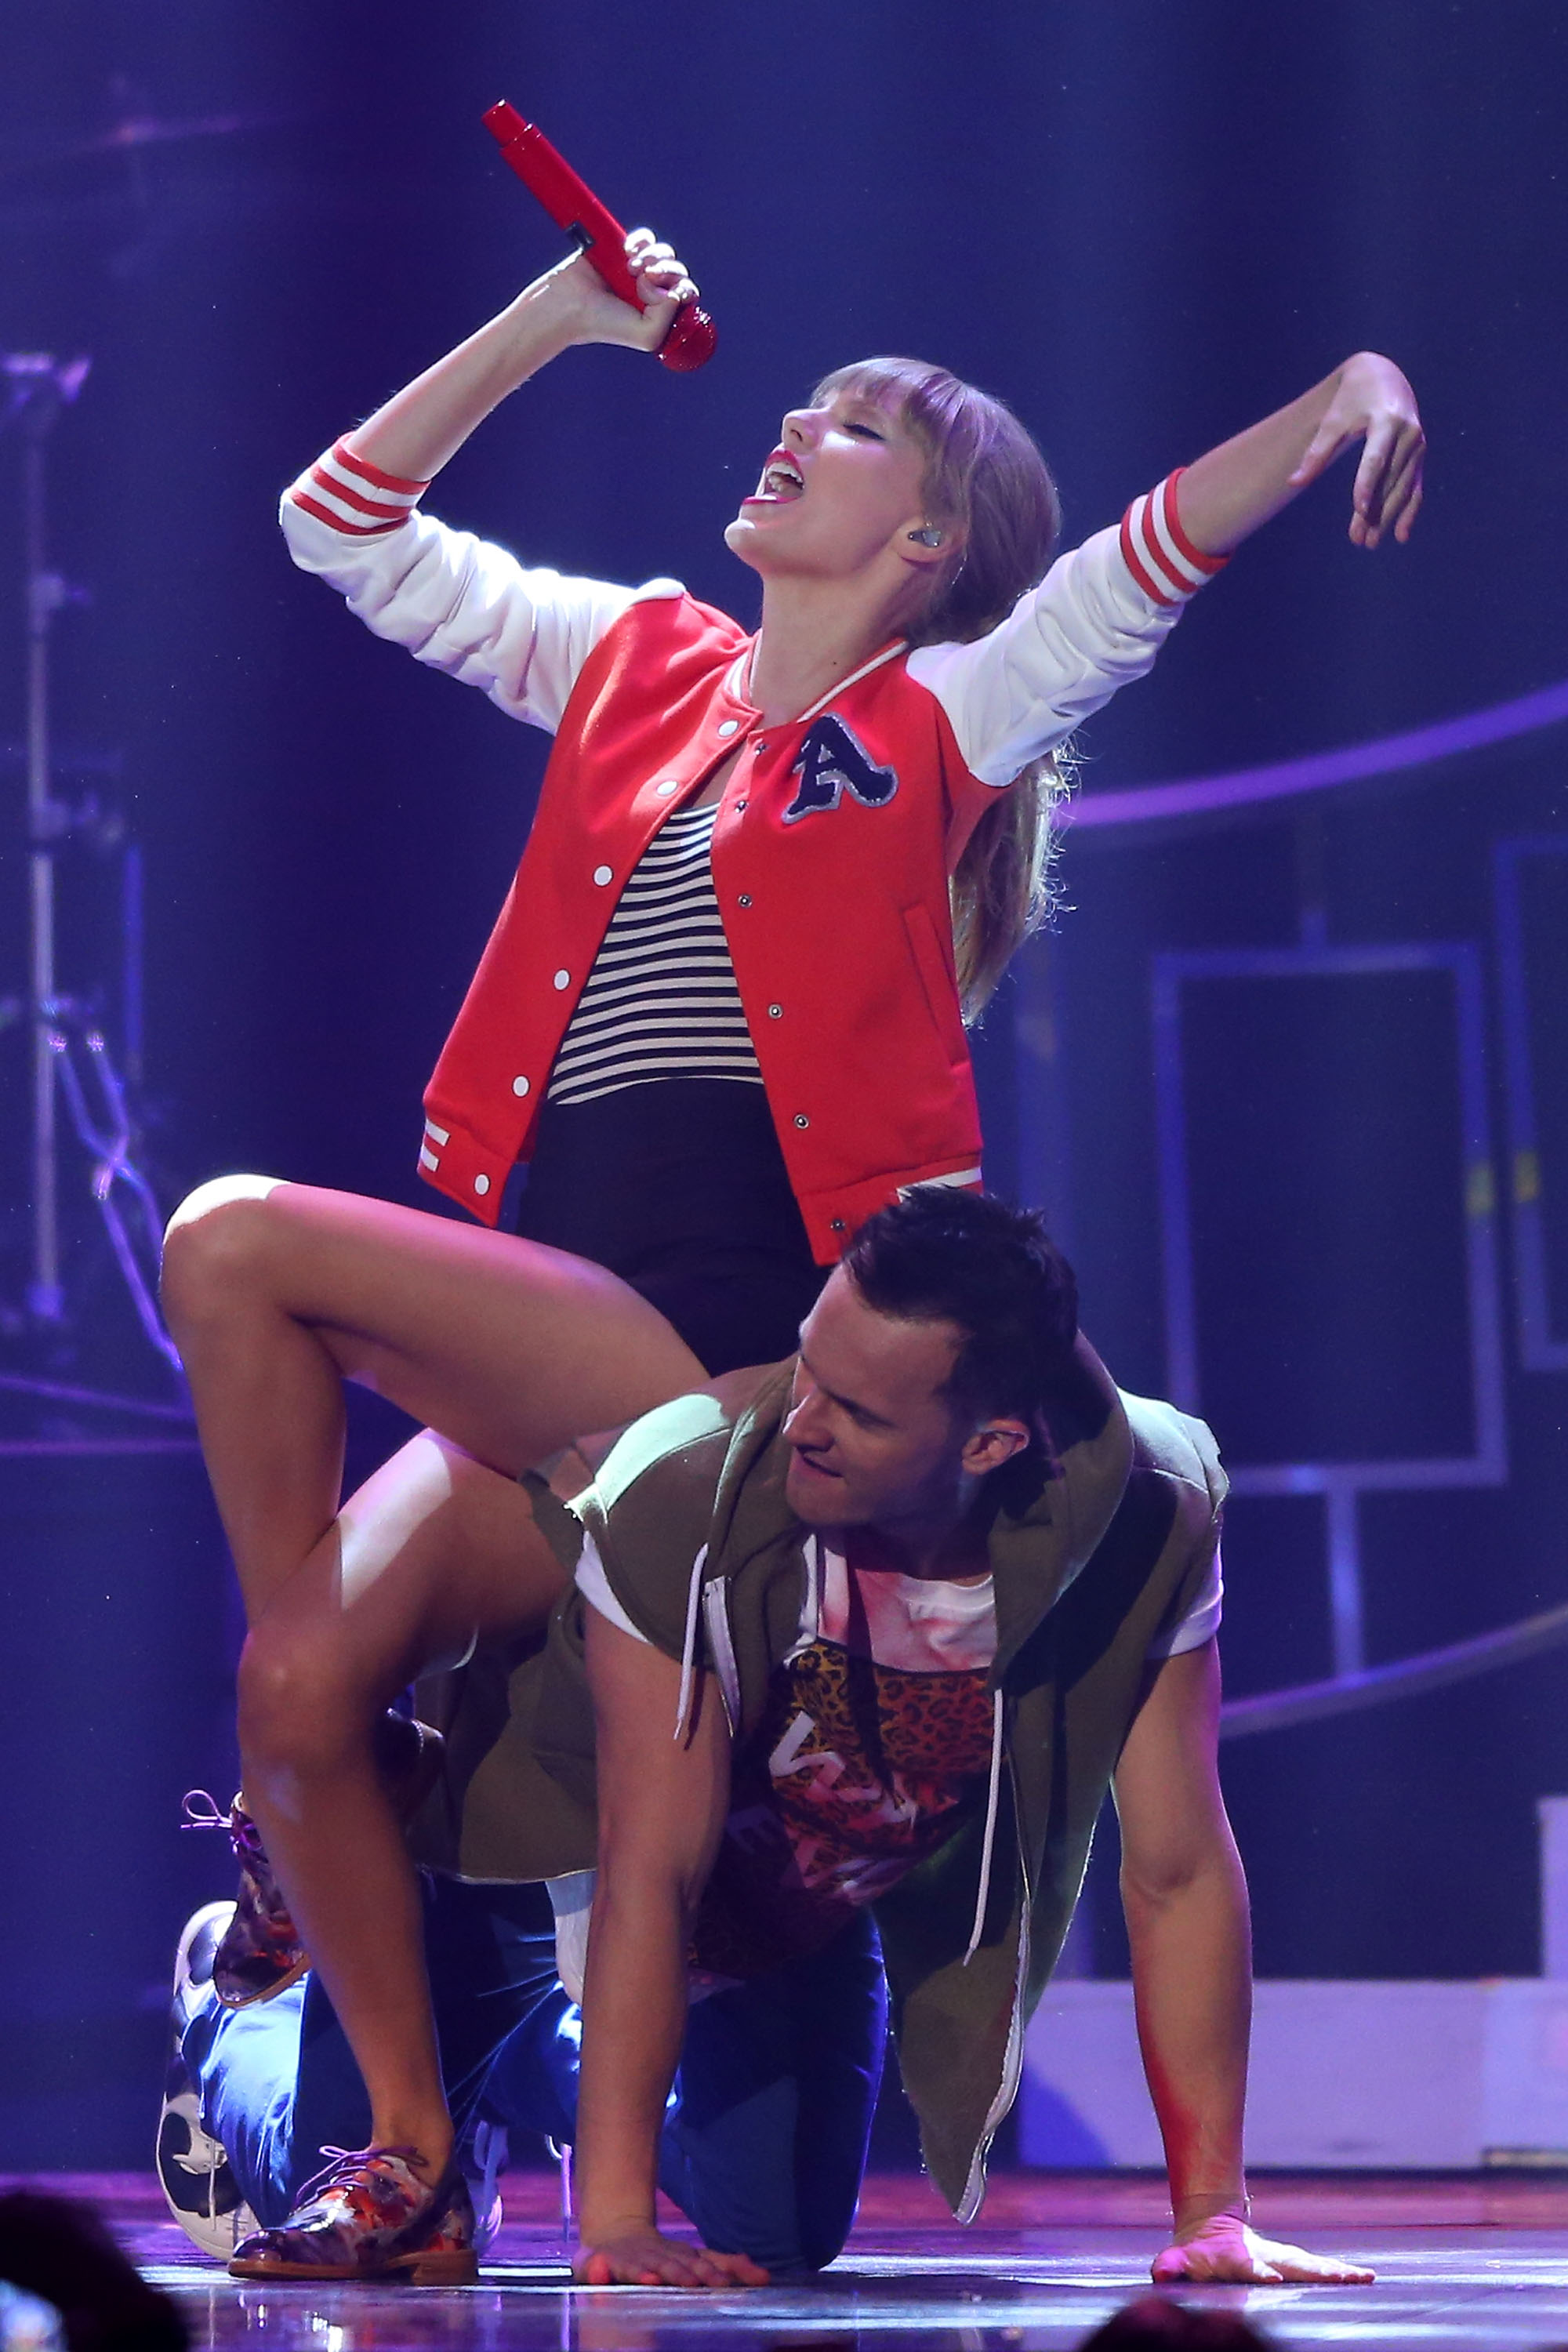 Taylor Swift performed in a red and white varsity jacket.